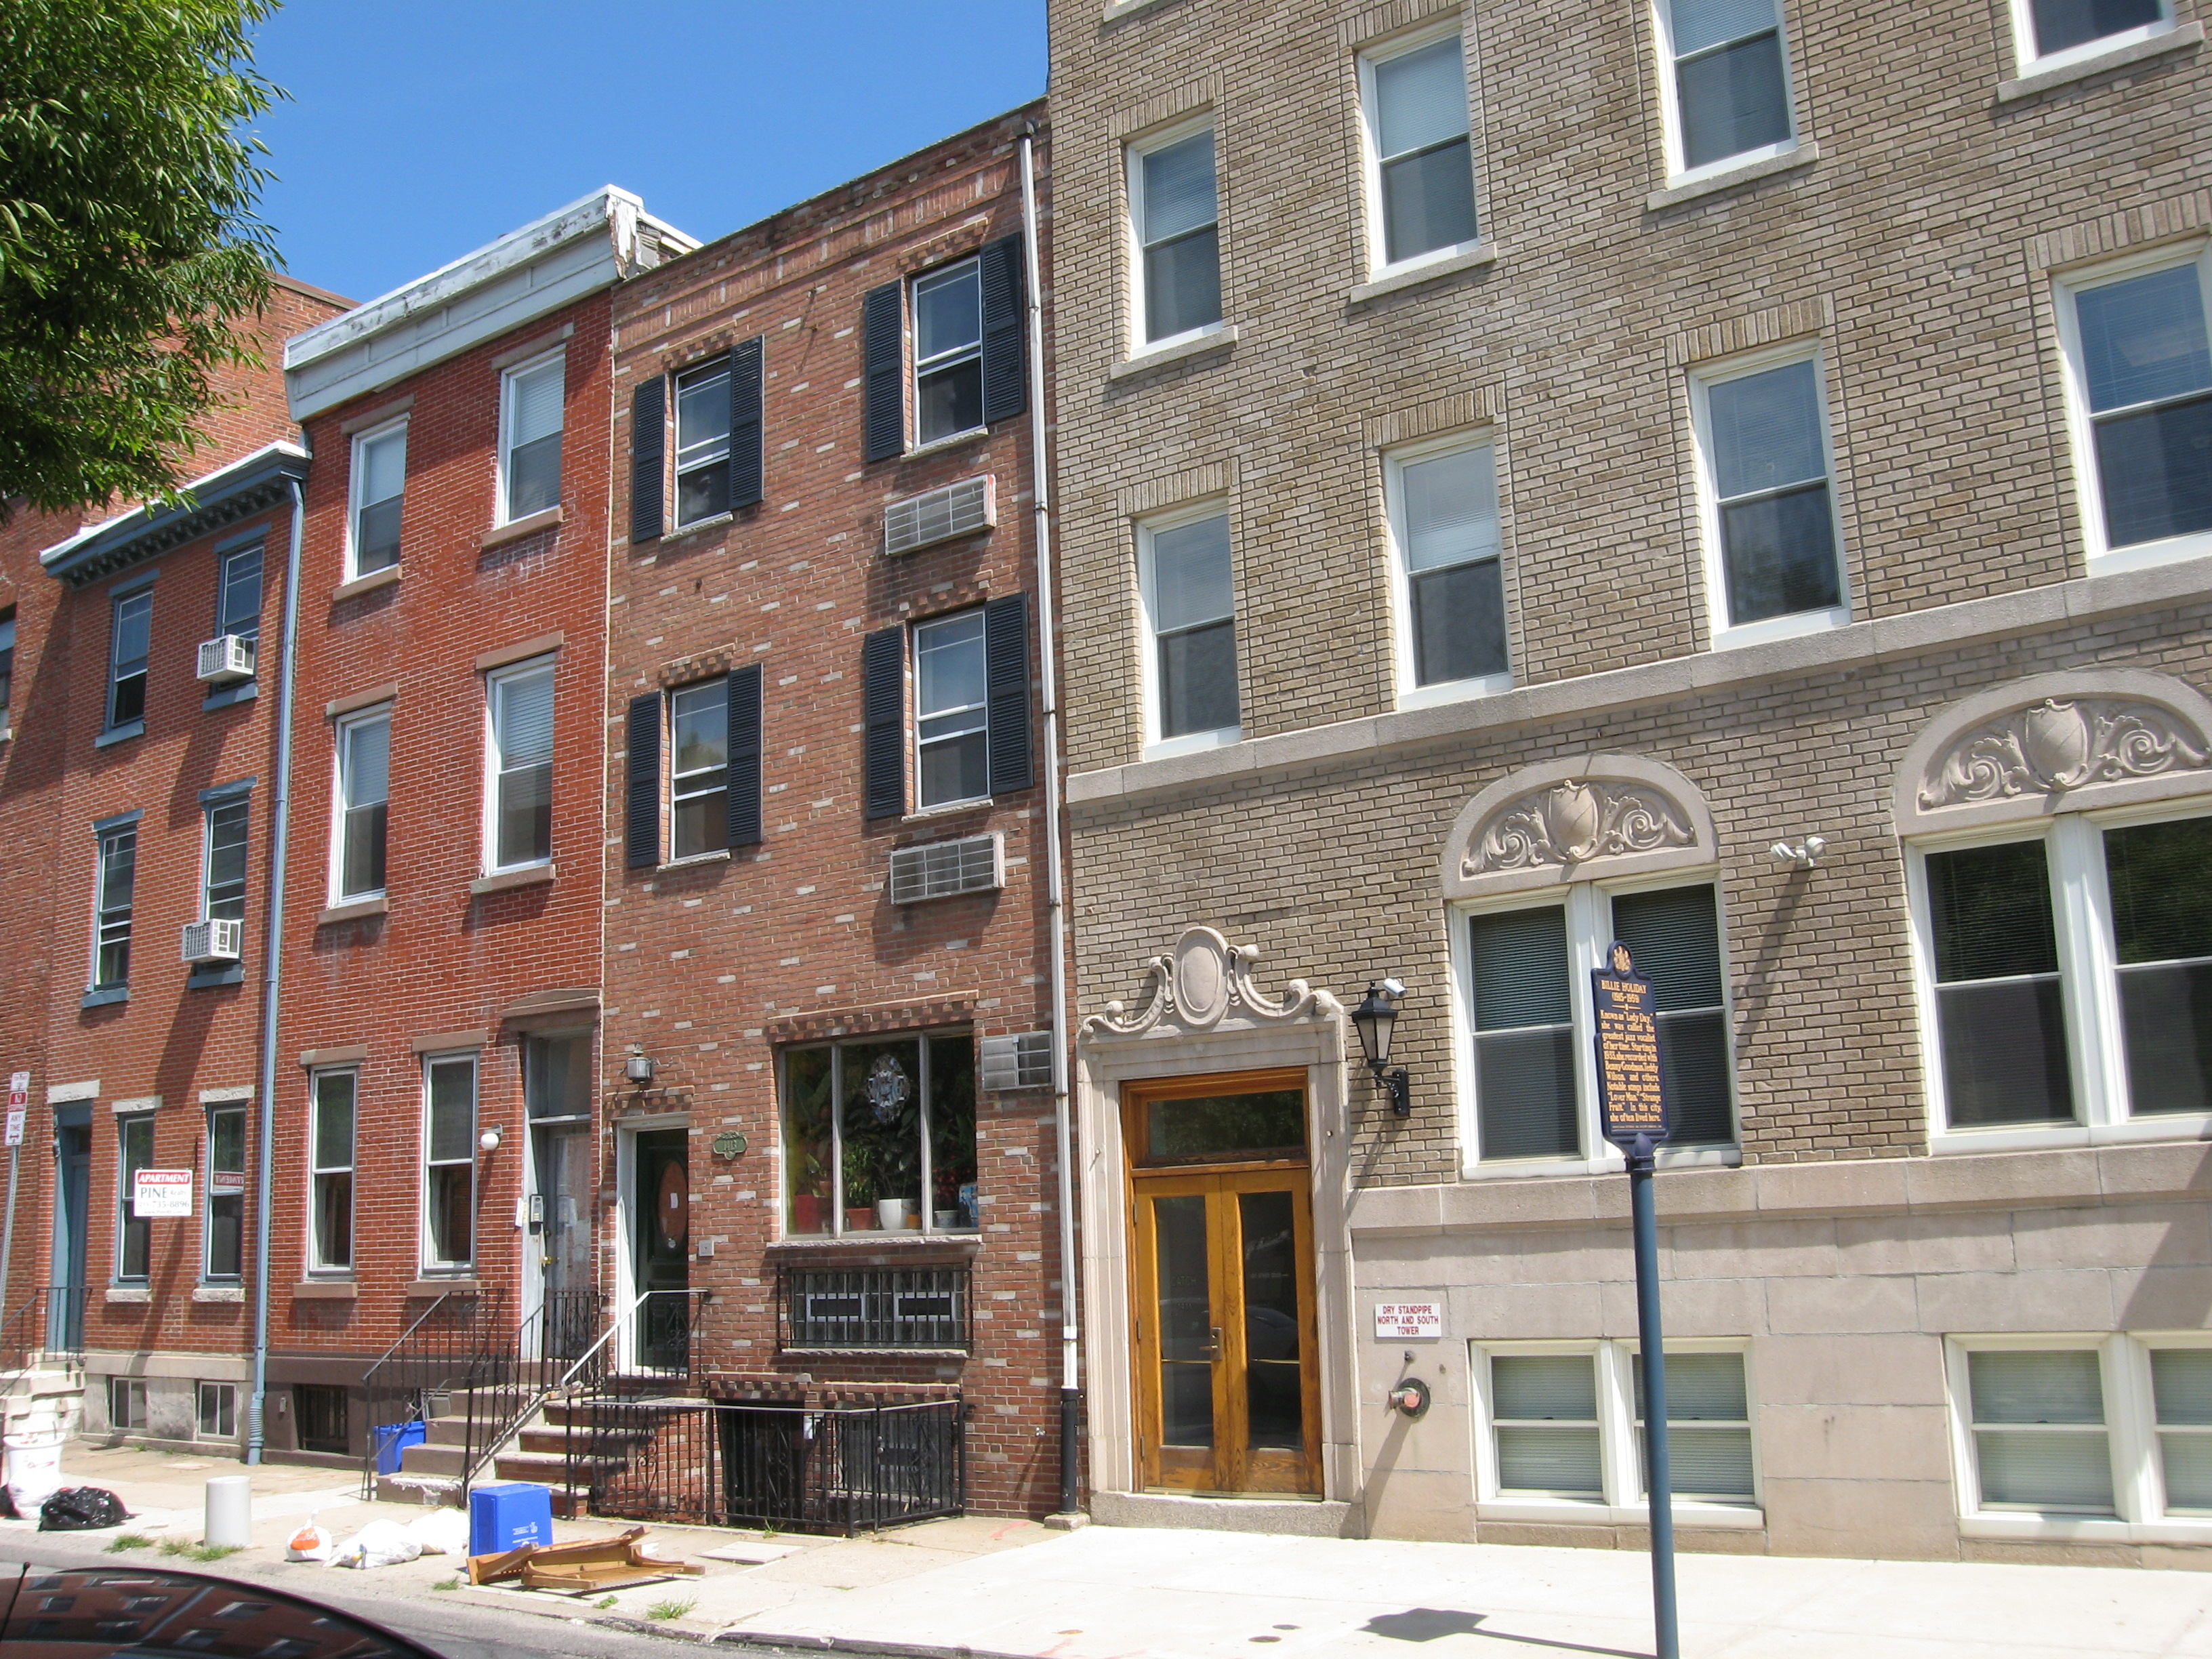 house essay in philadelphia Ranking of best places to buy a house in the philadelphia area market based on  home values, property taxes, and philadelphia area real estate statistics.